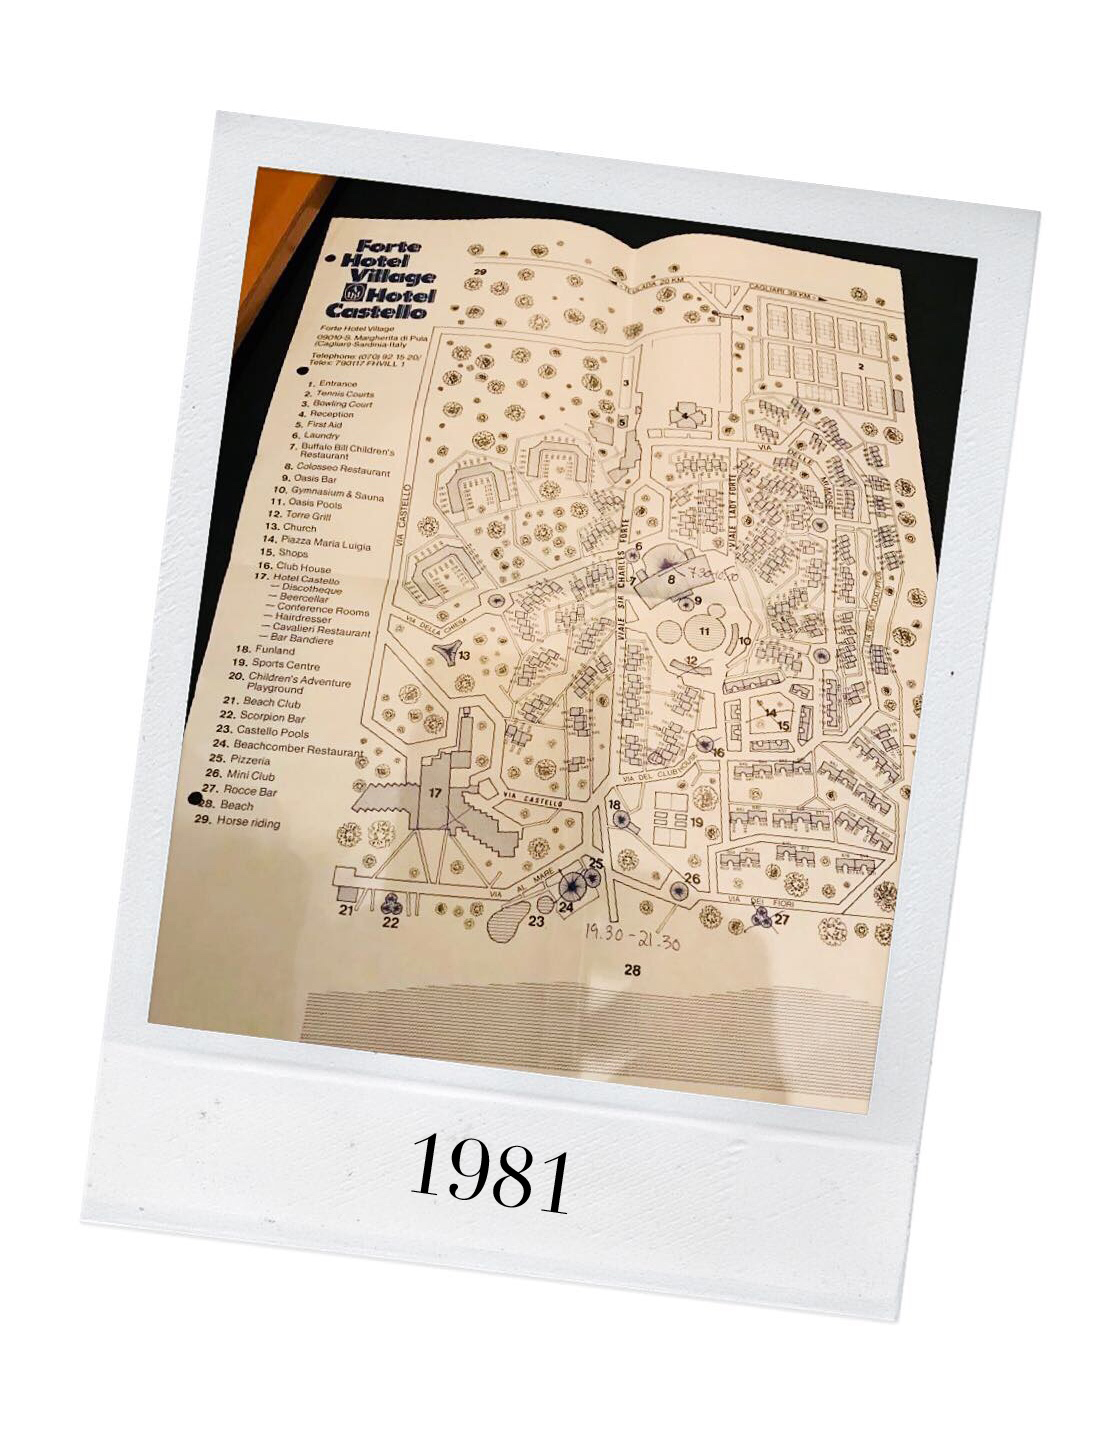 Forte Village Resort map 1981